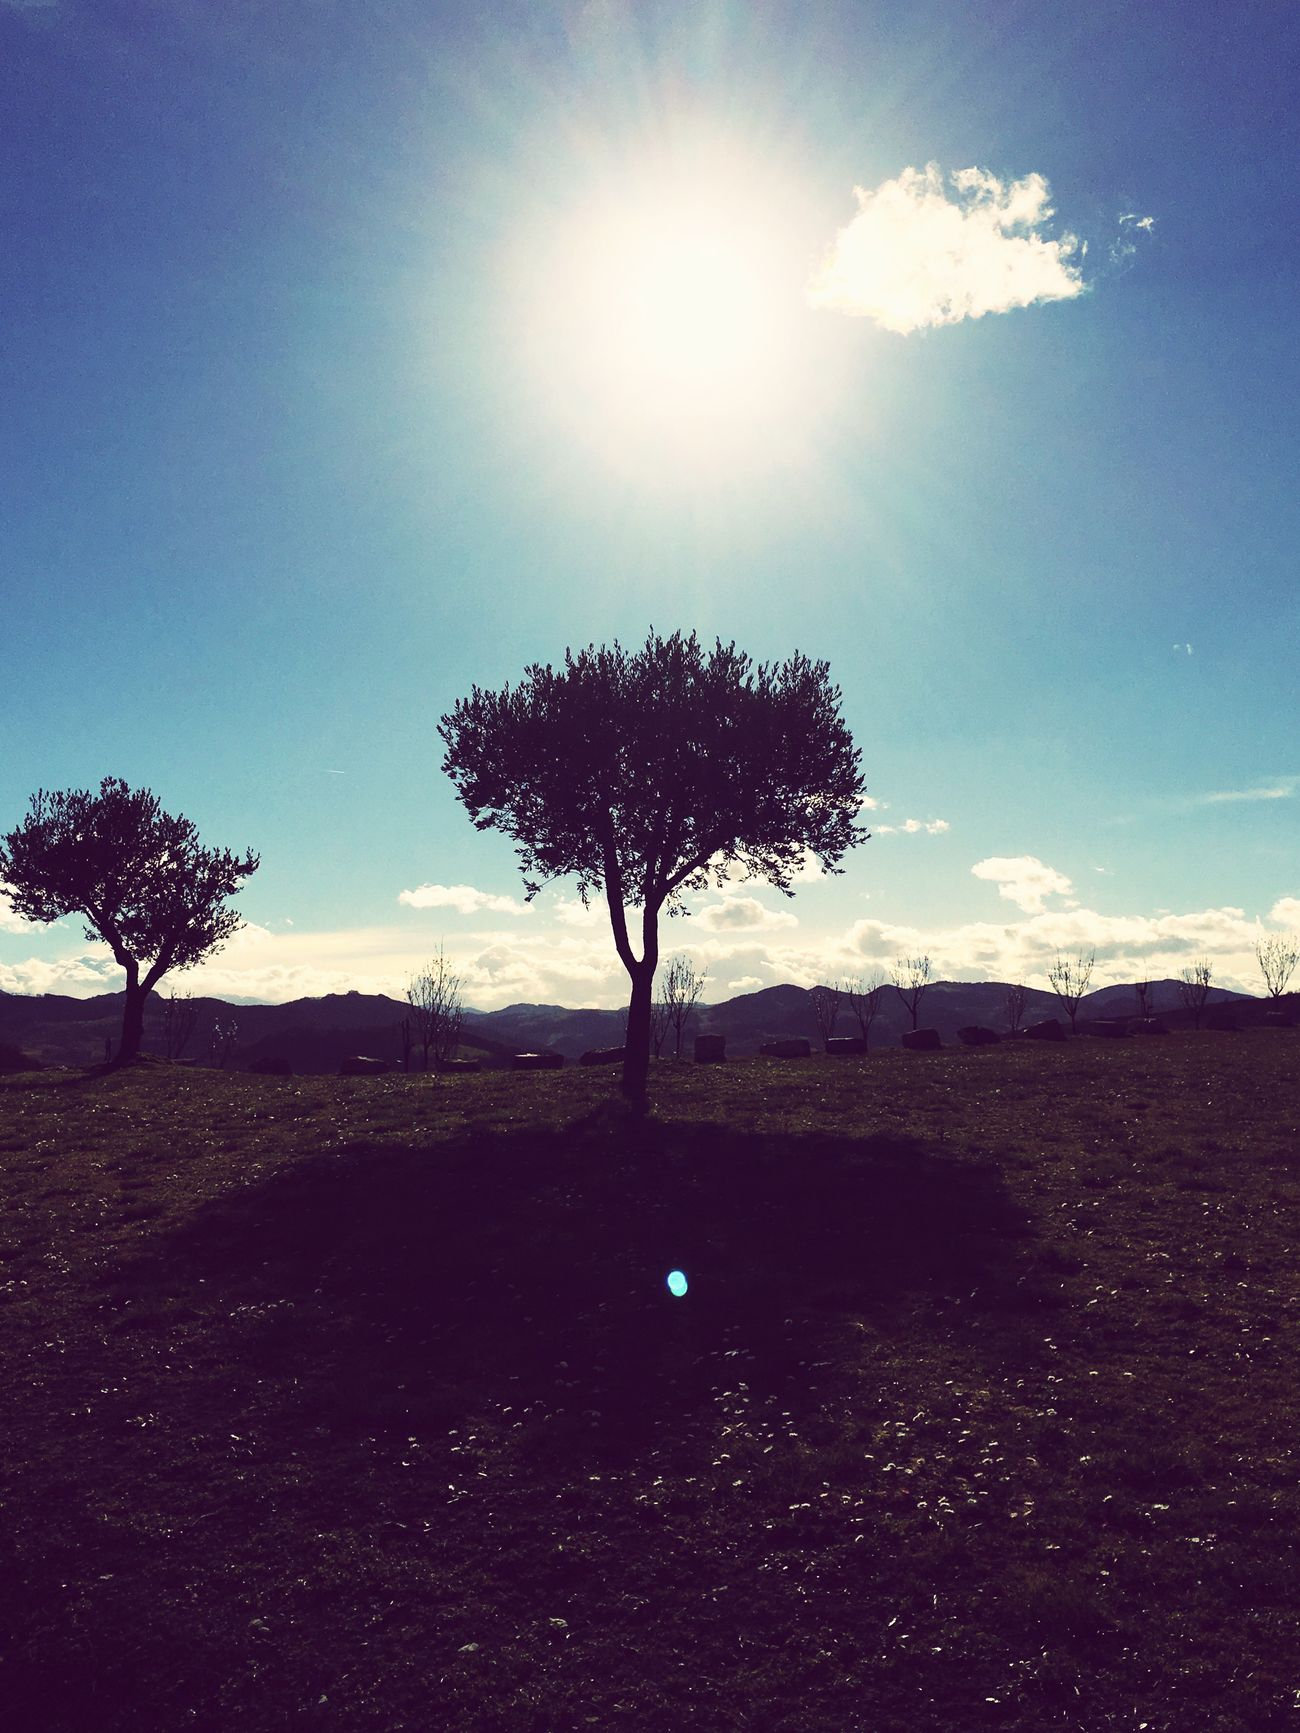 Landscape Tree Tranquil Scene Tranquility Solitude Nature Beauty In Nature Majestic Scenics Sky Lone Sun Sunlight Outdoors No People Day